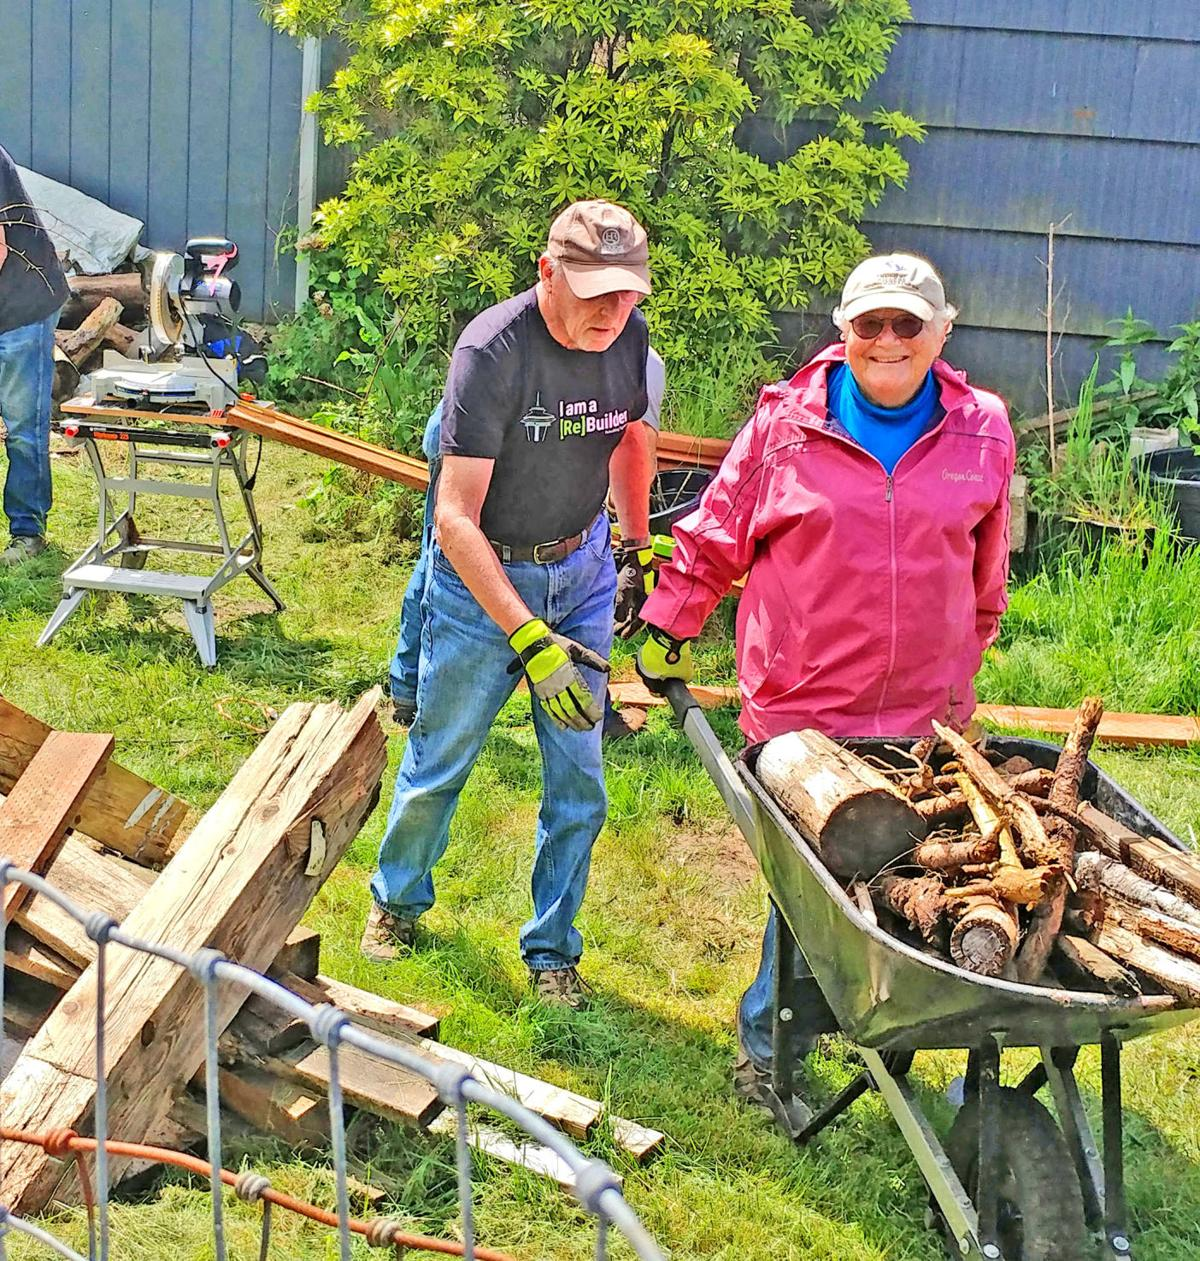 Rebuilding Together board members Dick Lenahan and Jean Stauffer